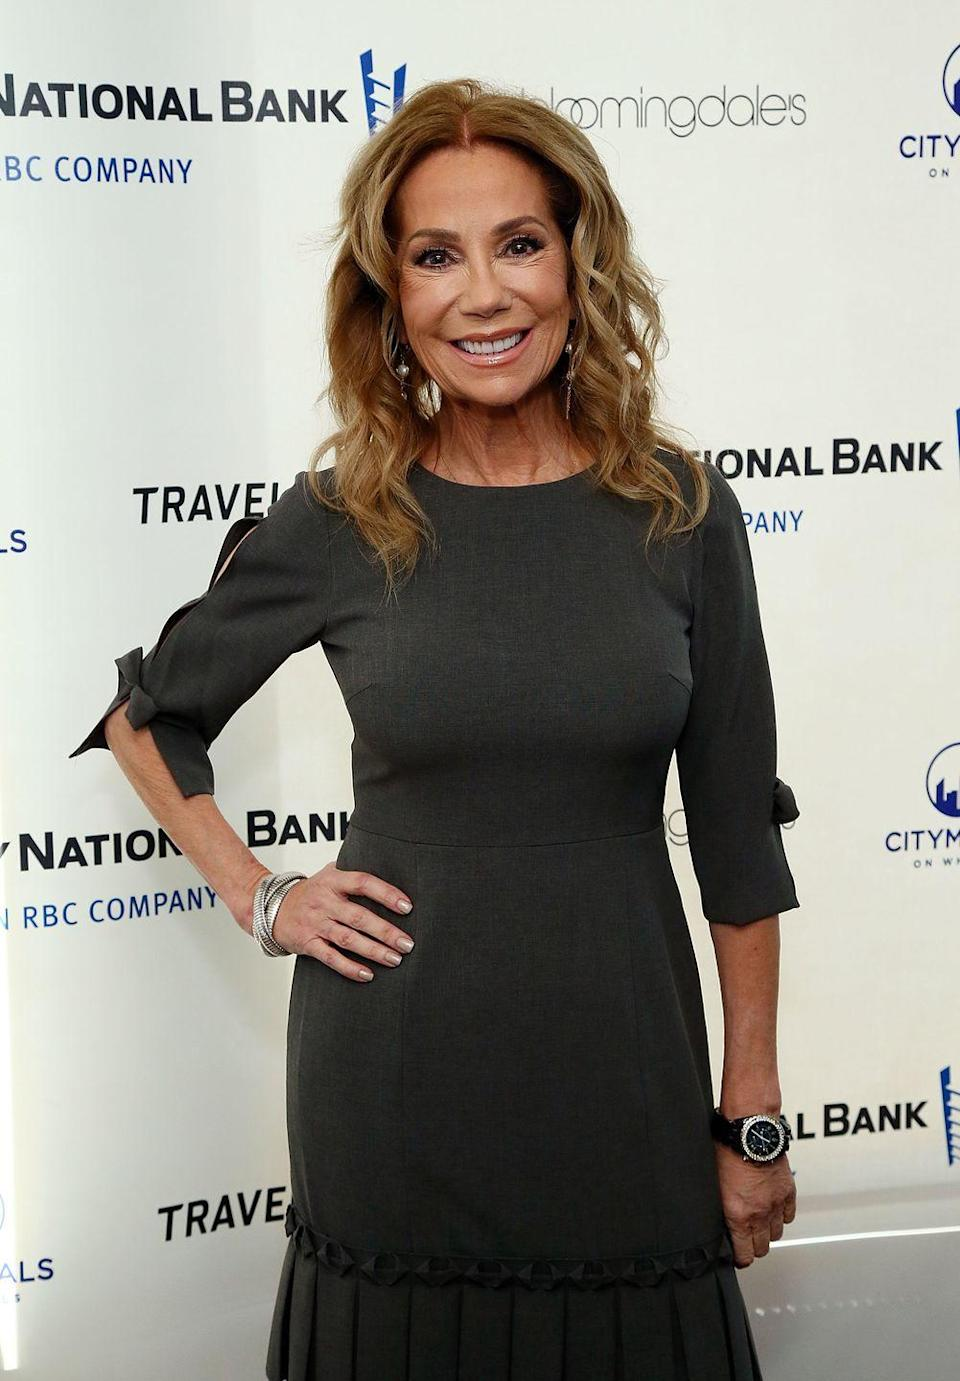 """<p>Kathie Lee Gifford has often <a href=""""https://www.stitcher.com/podcast/the-billy-hallowell-podcast/e/56880731"""" rel=""""nofollow noopener"""" target=""""_blank"""" data-ylk=""""slk:spoken openly about her faith in God"""" class=""""link rapid-noclick-resp"""">spoken openly about her faith in God</a>. """"The Bible says to pray unceasingly. How do we do that? You make our life a prayer — that's how,"""" she said in an interview on The Billy Hallowell Podcast. """"With every breath you breathe … it's constant awareness of Him. It's something that grows as you grow in your faith.""""</p>"""